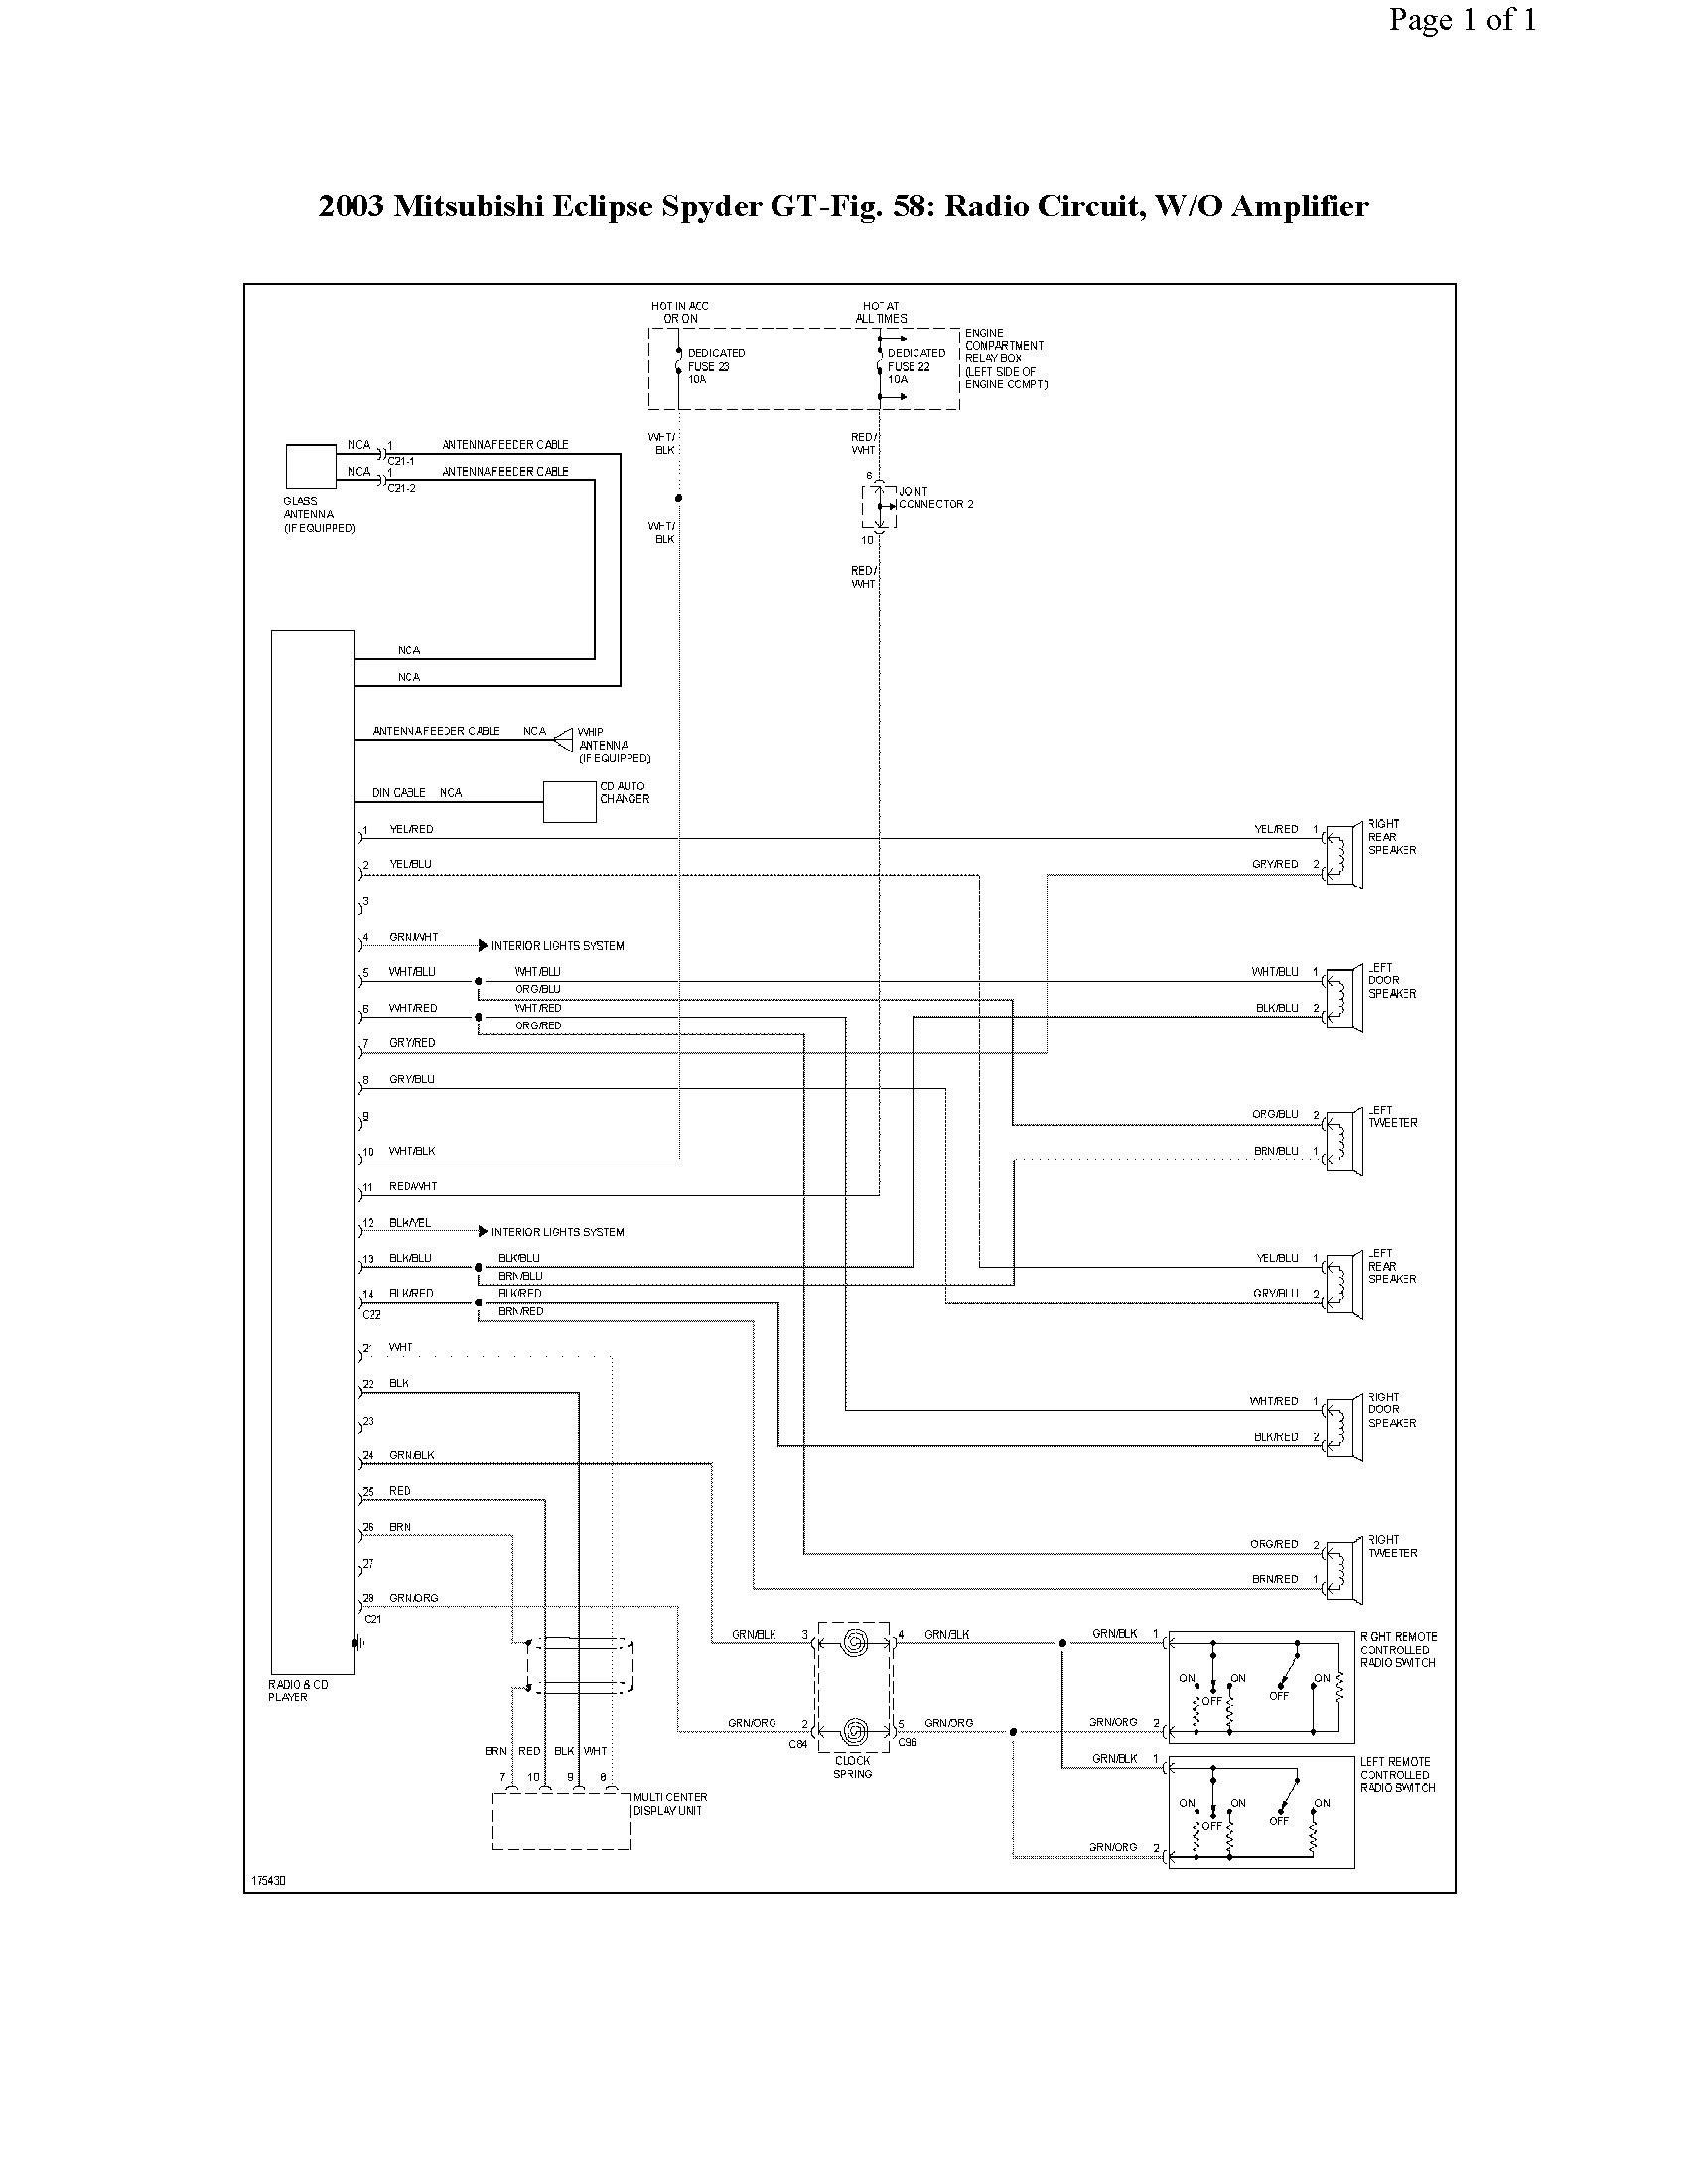 Eclipse Radio Wiring Diagram Electrical Work Wiring Diagram \u2022 Dual Car  Stereo Wiring Diagram Eclipse Car Stereo Wiring Diagram